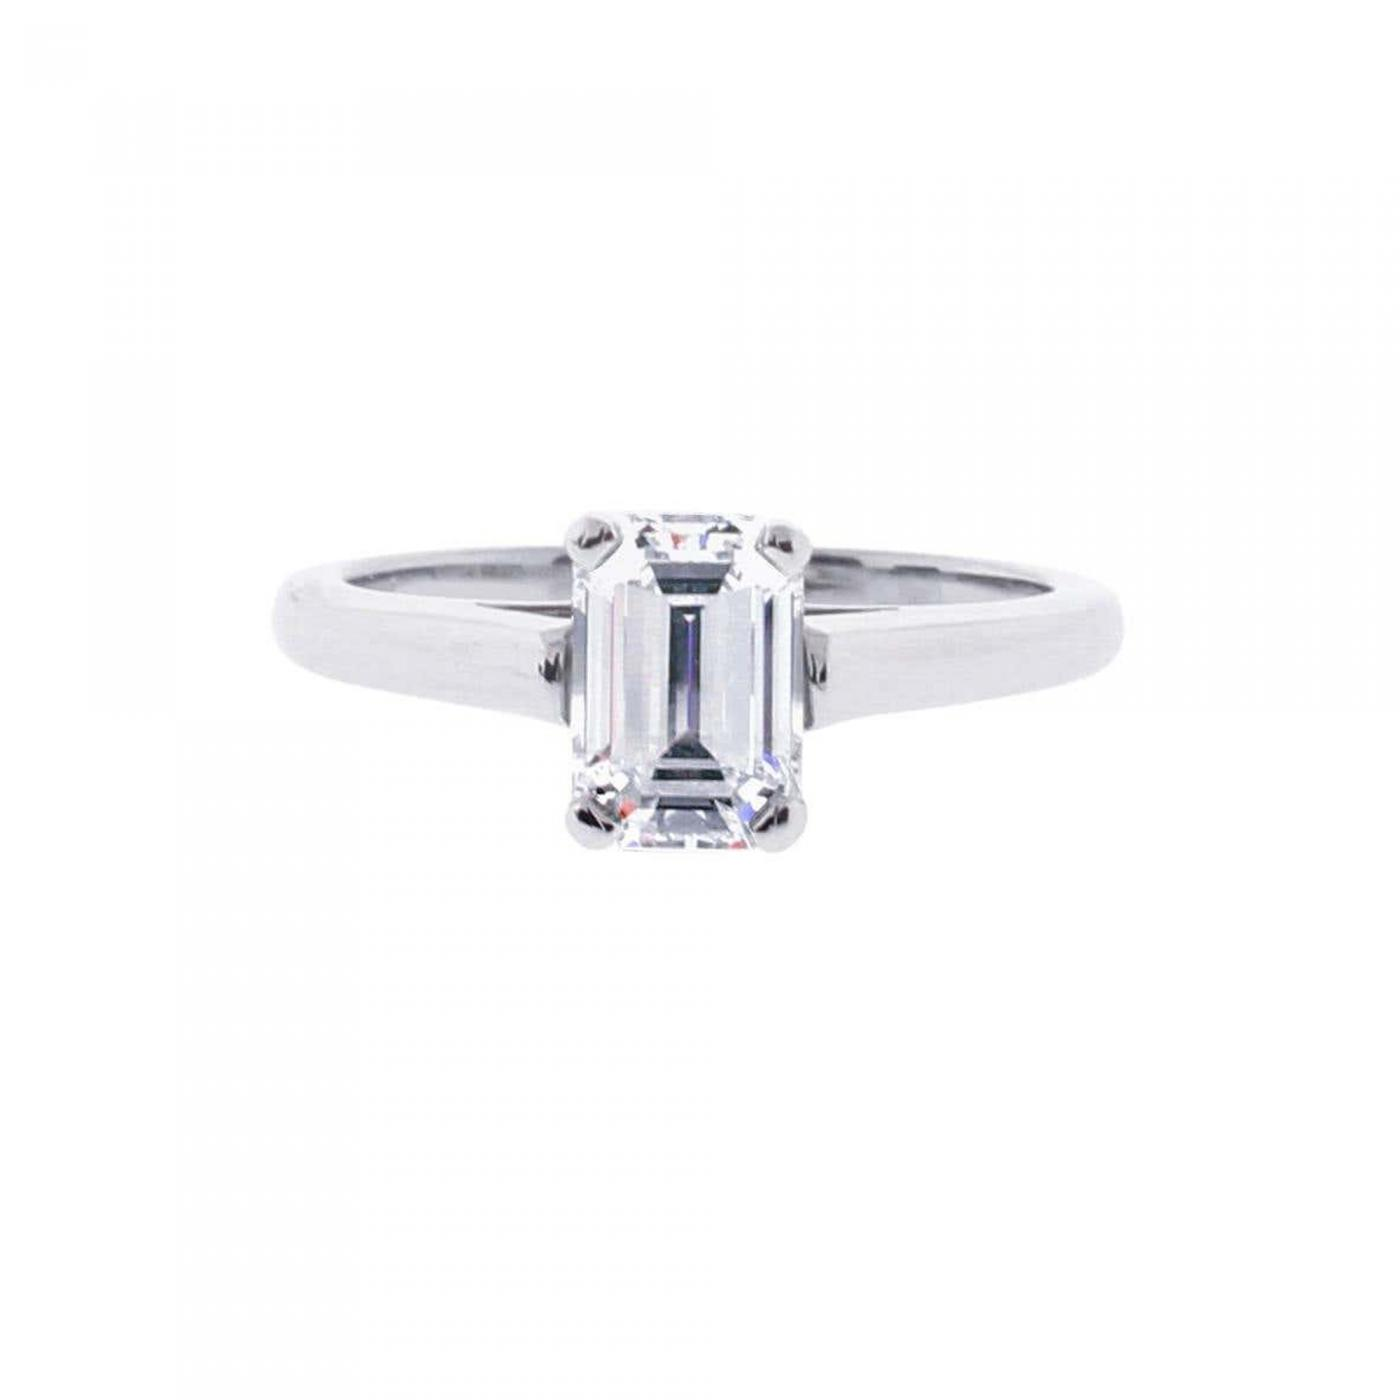 Tiffany Co Tiffany Co Emerald Cut Diamond Solitaire Engagement Ring